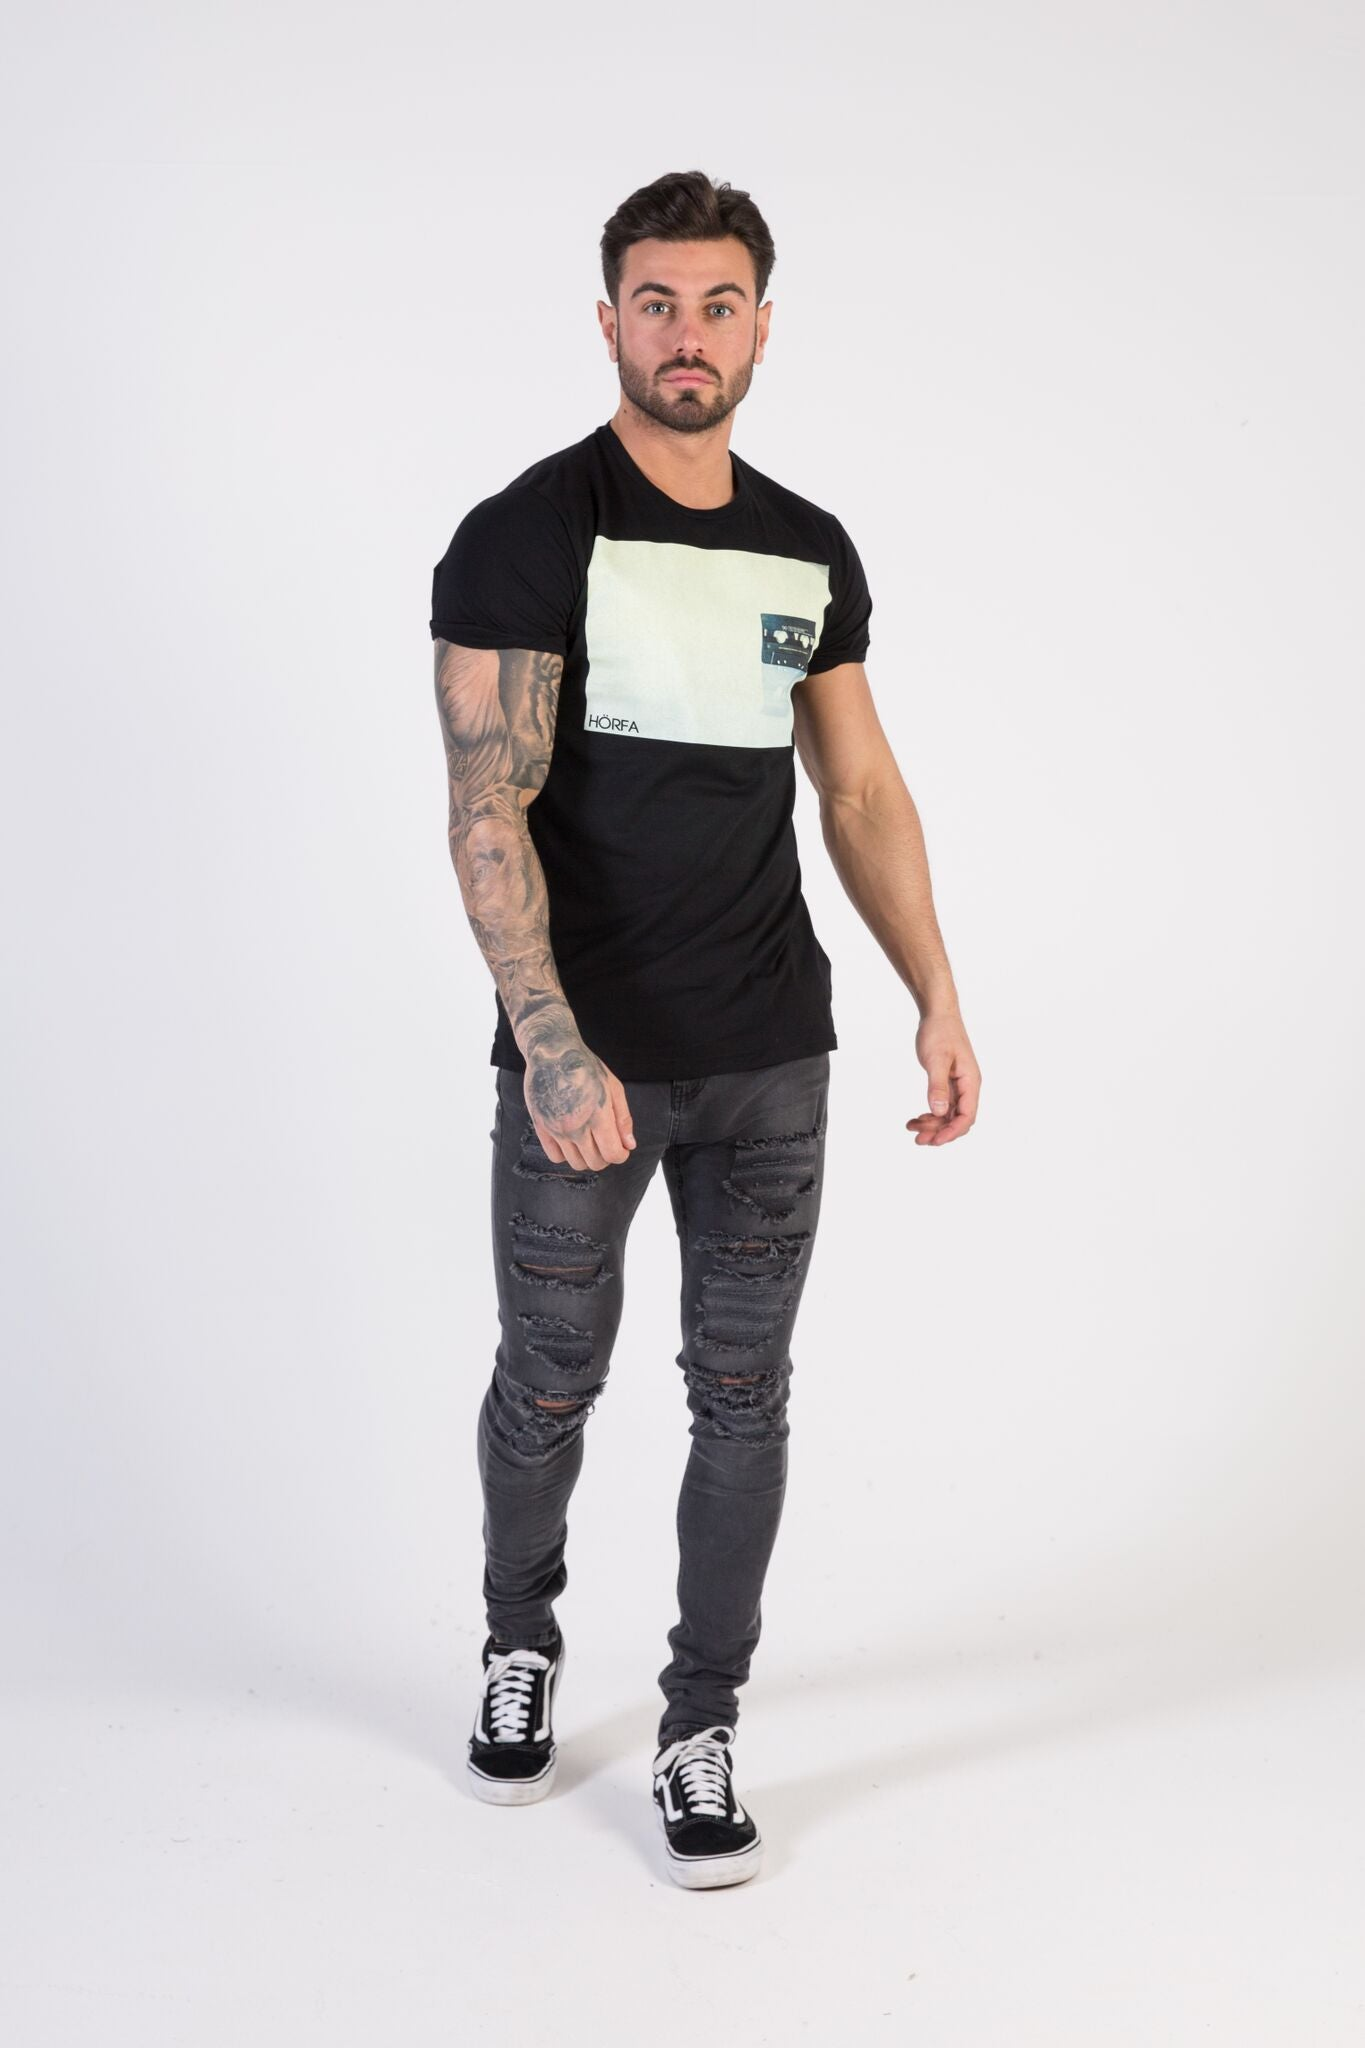 CASSETTE Muscle fit T-Shirt - HÖRFA is a men's global fashion brand that provides products such as Fashionable Watches, Wallets, Sunglasses, Belts, Beard and Male Grooming Products